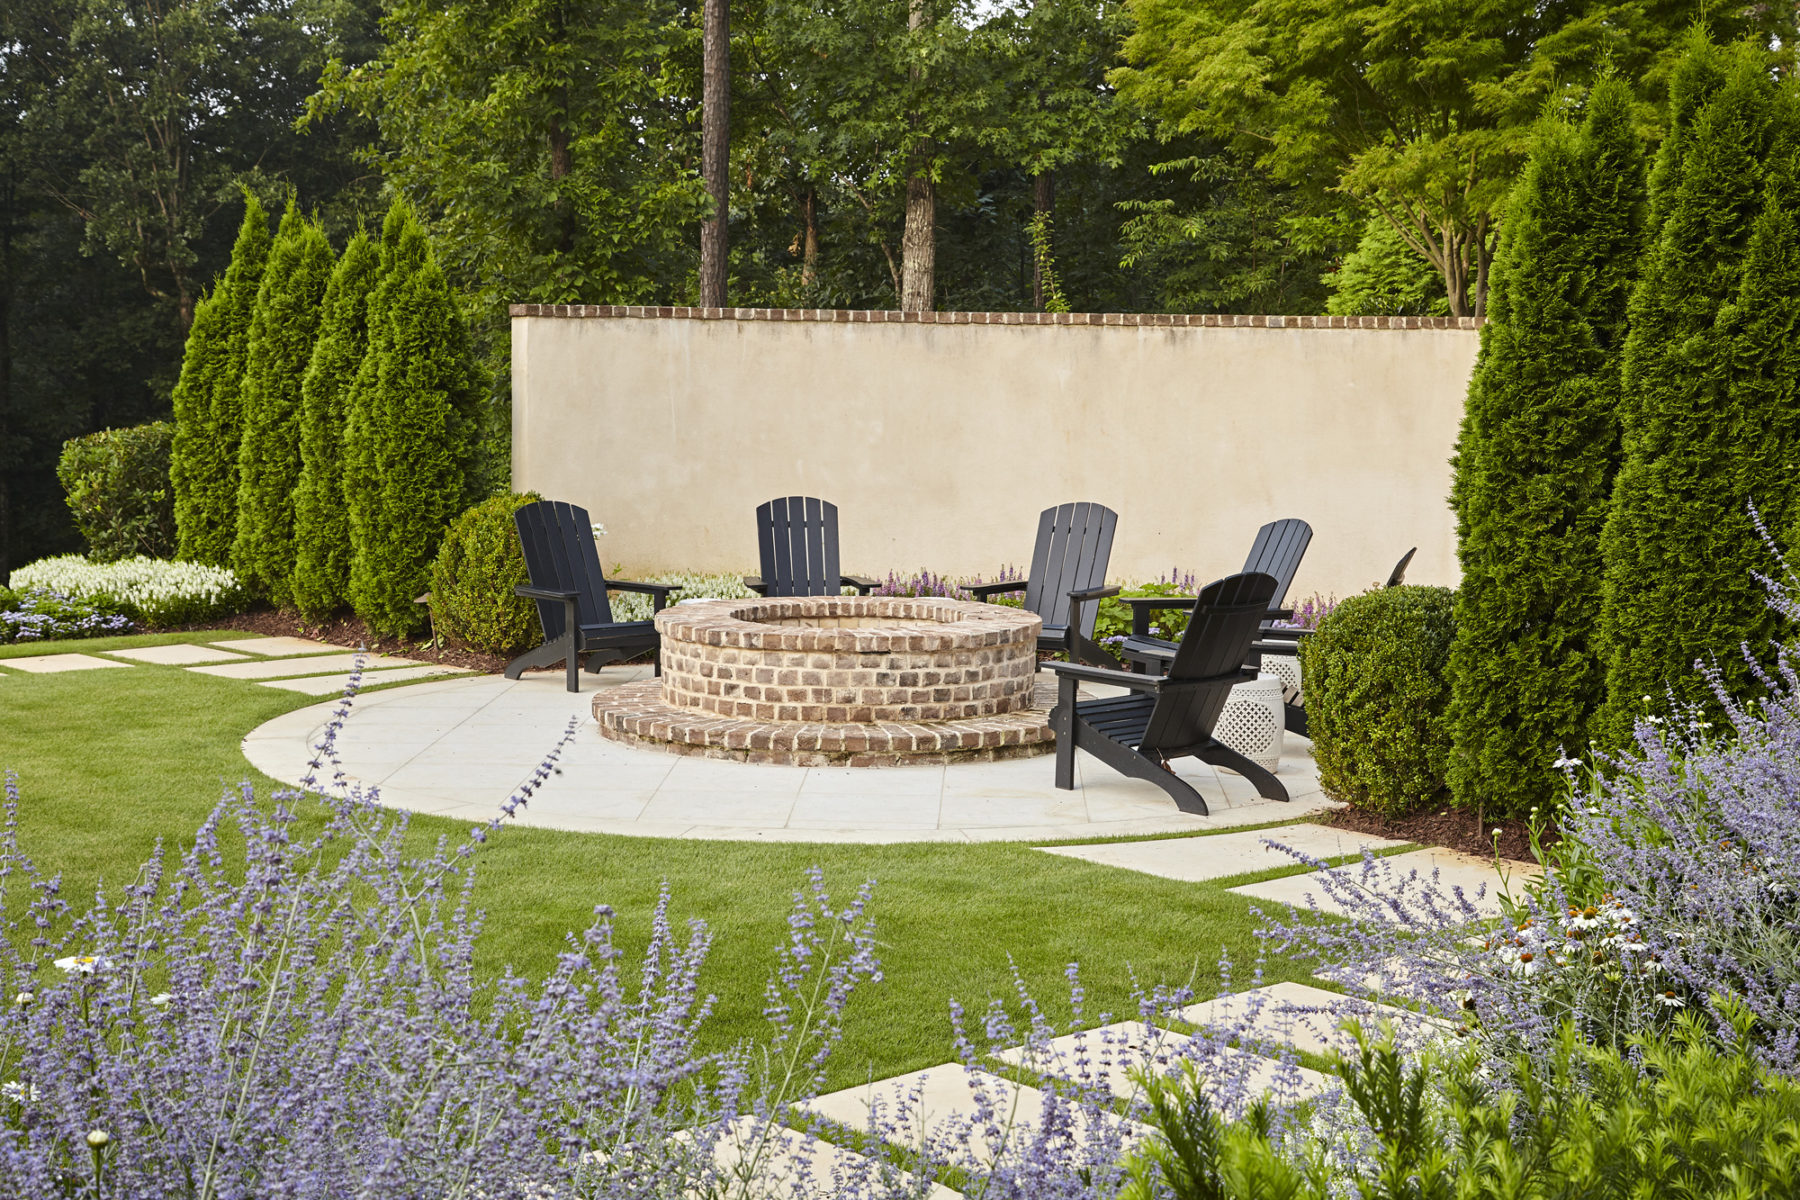 Stucco and brick edged garden wall with paving stones leading to cozy brick firepit at Harrison Design traditional home